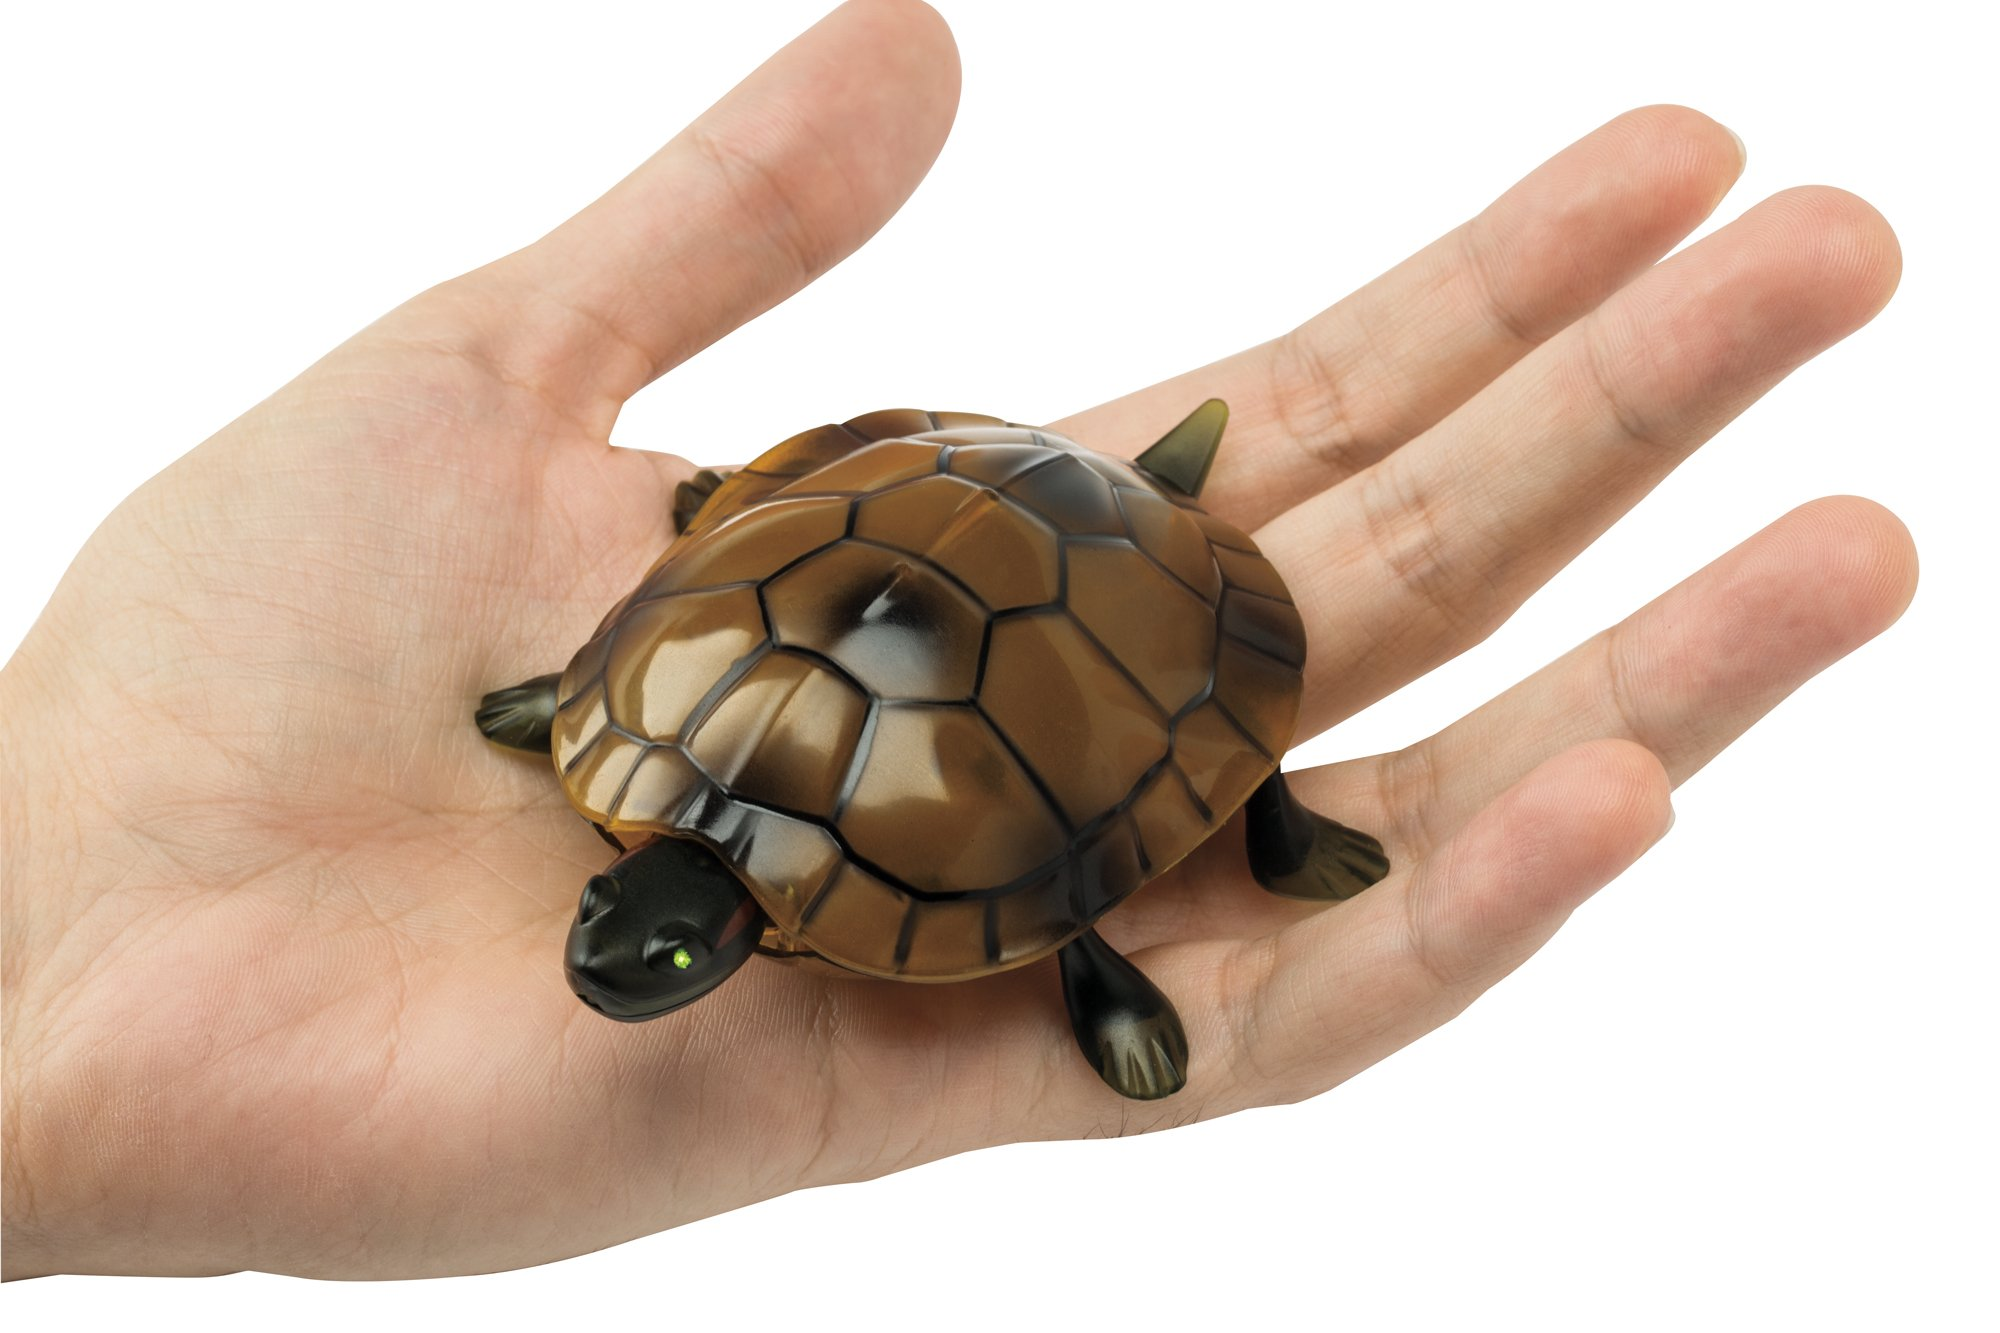 The Paragon Remote Control Turtle - RC Animal Toy, Turtle Toy for Kids and Adults by The Paragon (Image #6)